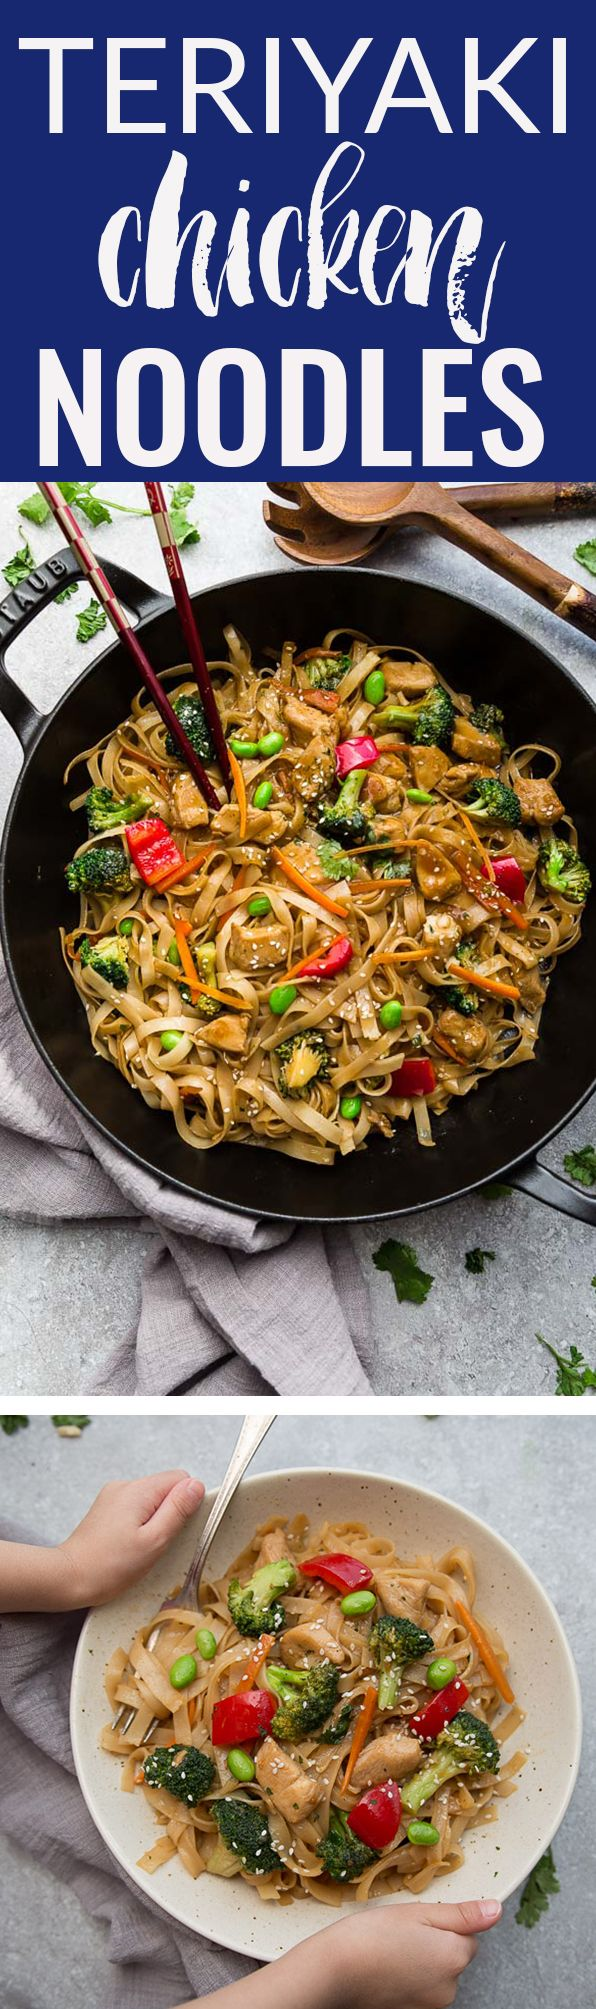 Teriyaki Chicken Noodles – a delicious one pot 30 minute meal perfect to curb those takeout cravings. Made with chicken, broccoli, edamame beans, carrots, gluten free rice noodles and the best sweet and savory Asian-inspired sauce. #teriyaki #onepot #chicken #noodles #asianfood #dinner #takeoutfakeout